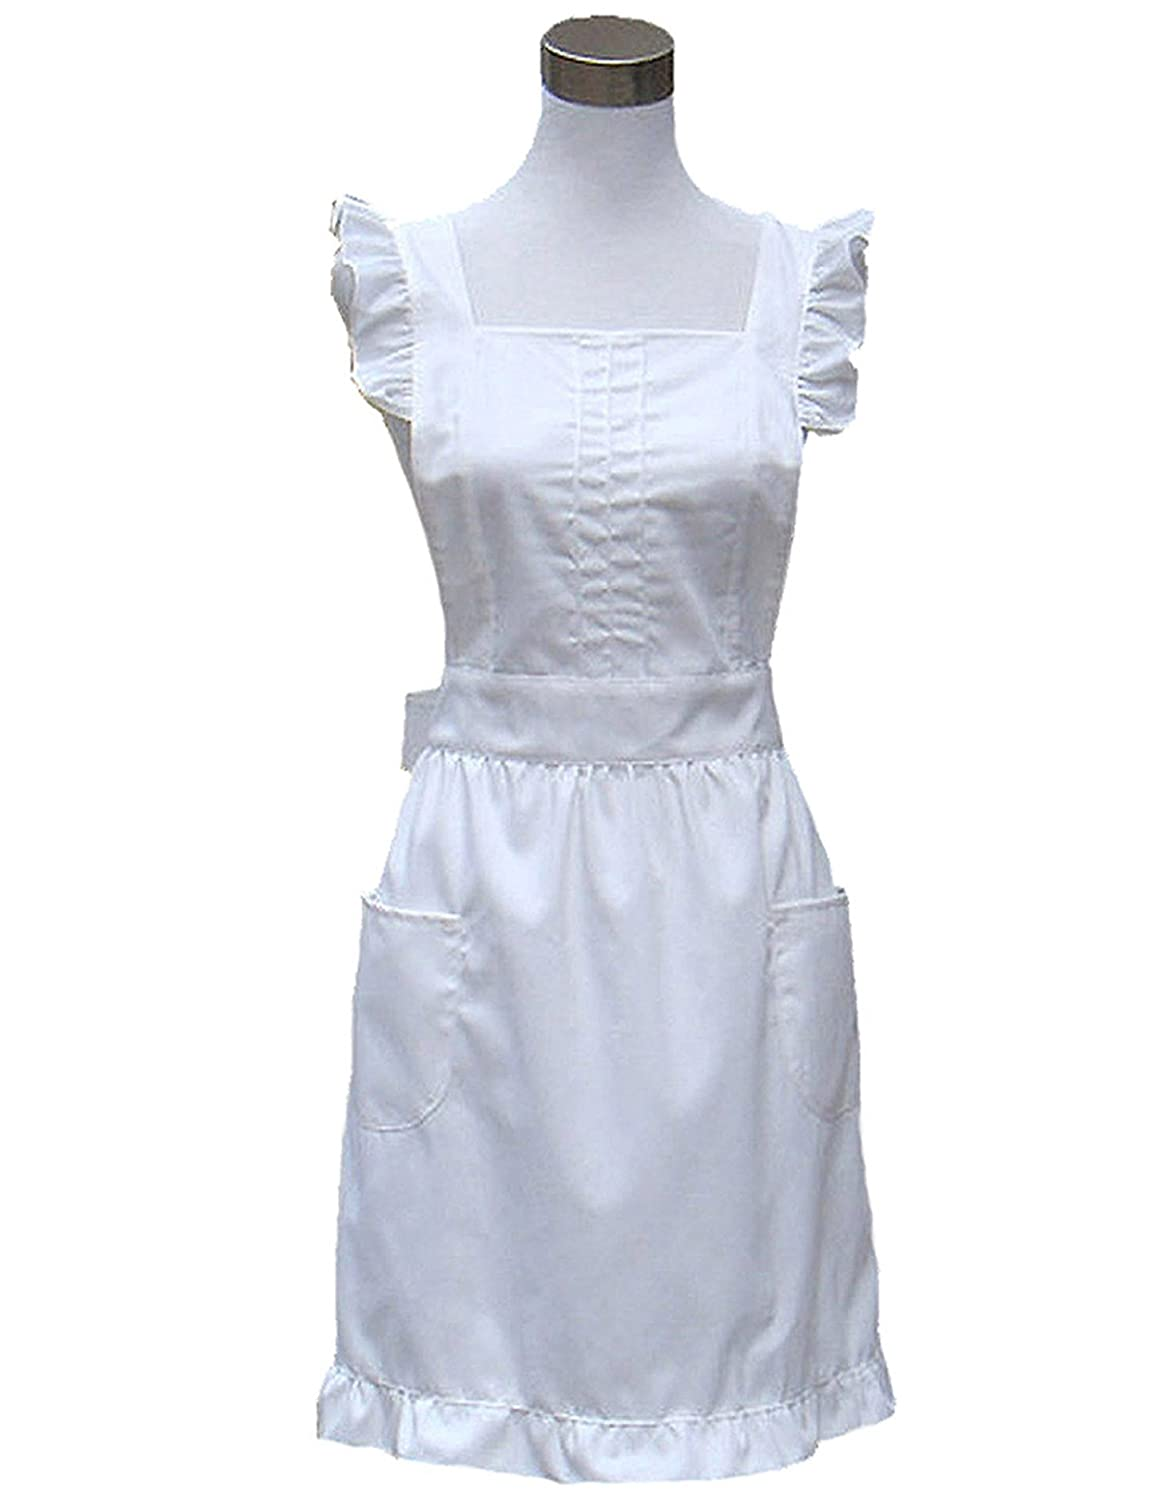 White apron dc